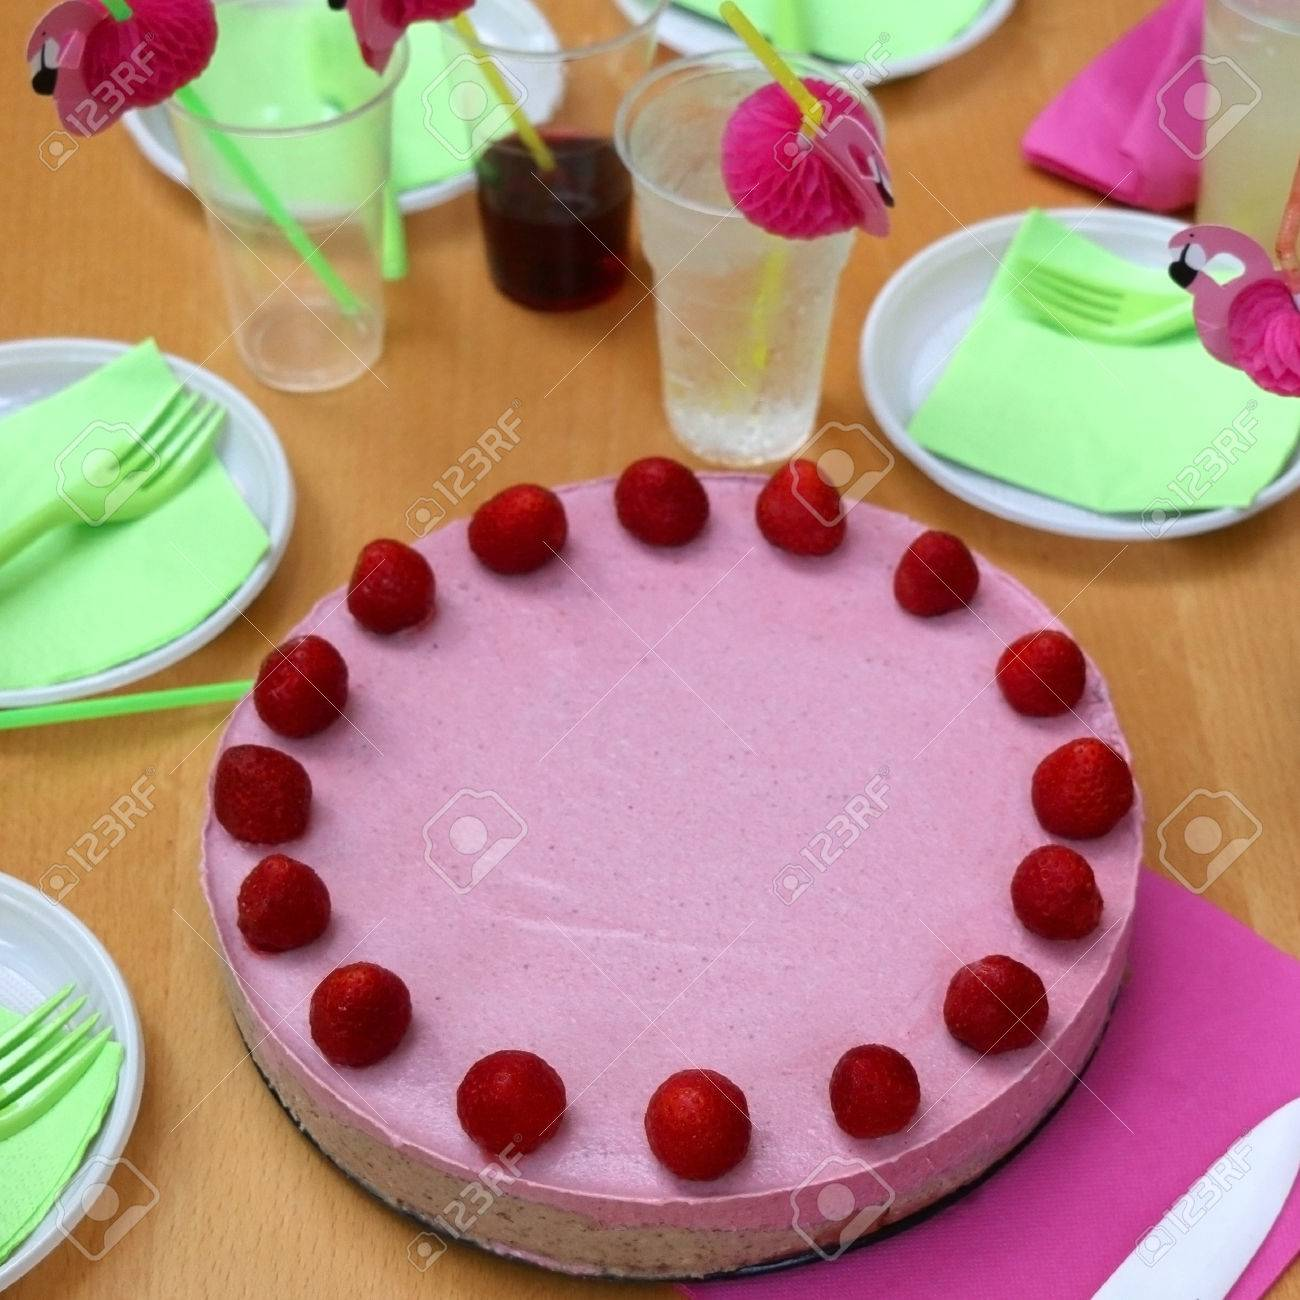 Birthday Party With Vegan Raw Strawberry Cake And Cute Flamingo